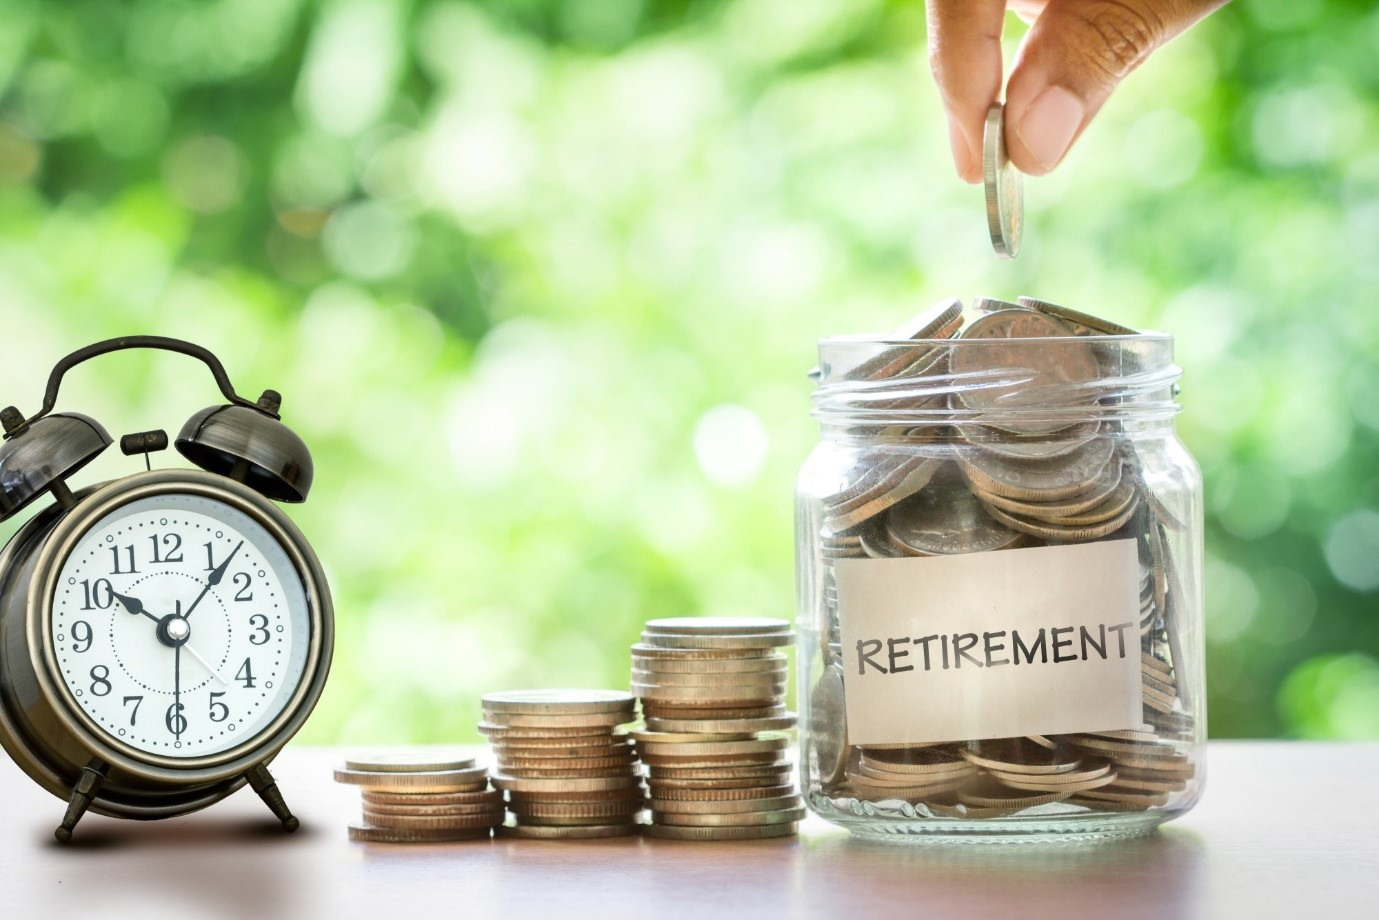 Money Matters: Is It Worth Paying a Financial Advisor?